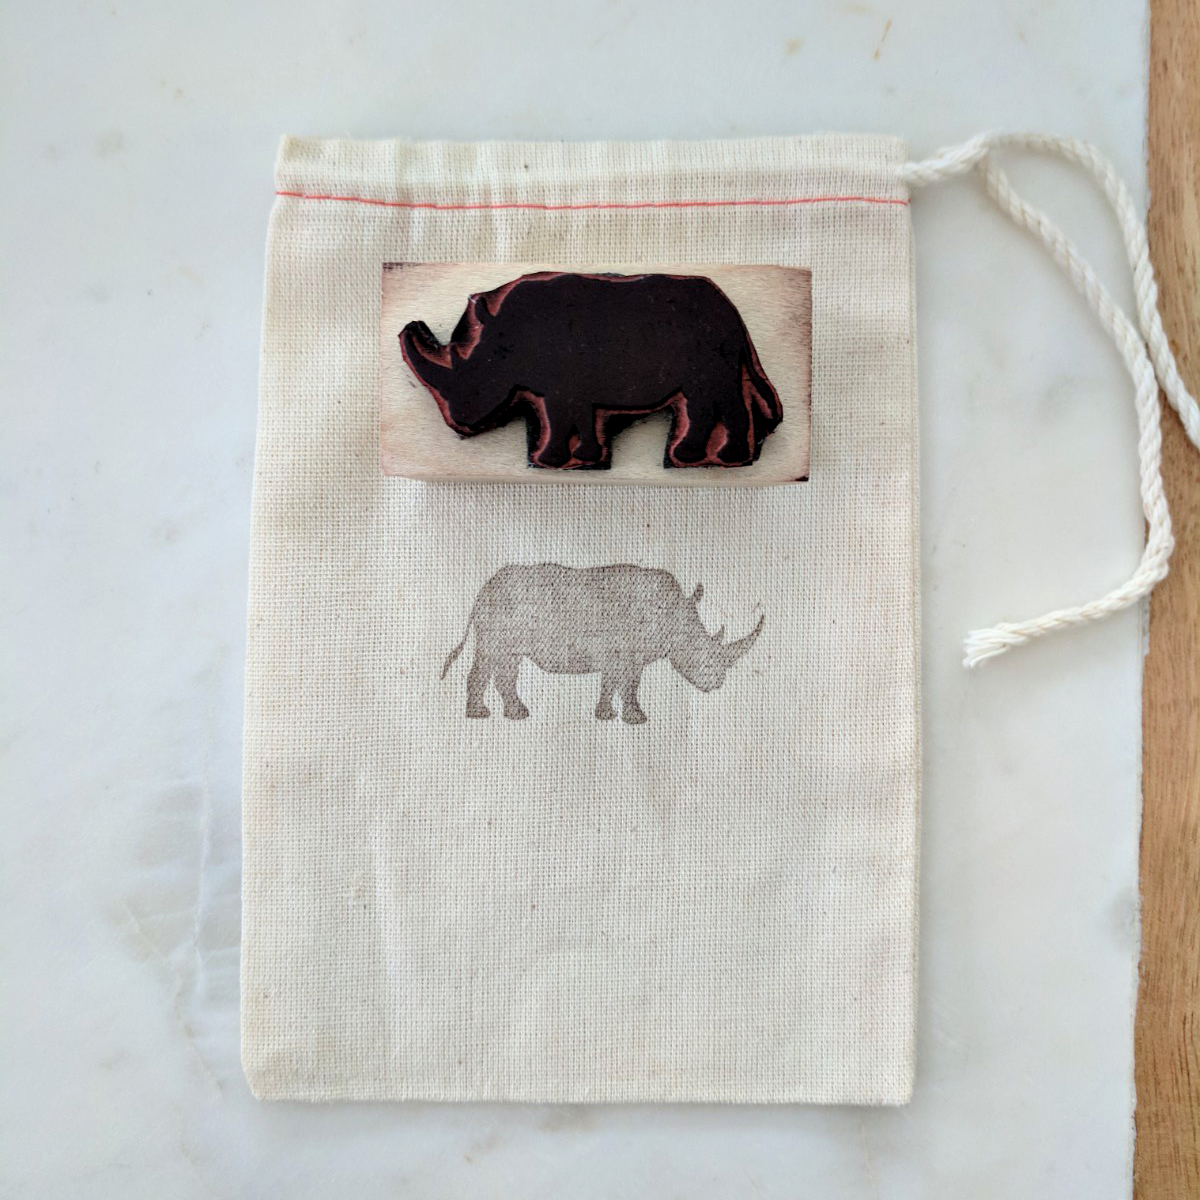 Cotton Bags - We package all of our rubber stamps and Christmas ornaments in cotton bags that are stamped with our rhino icon.